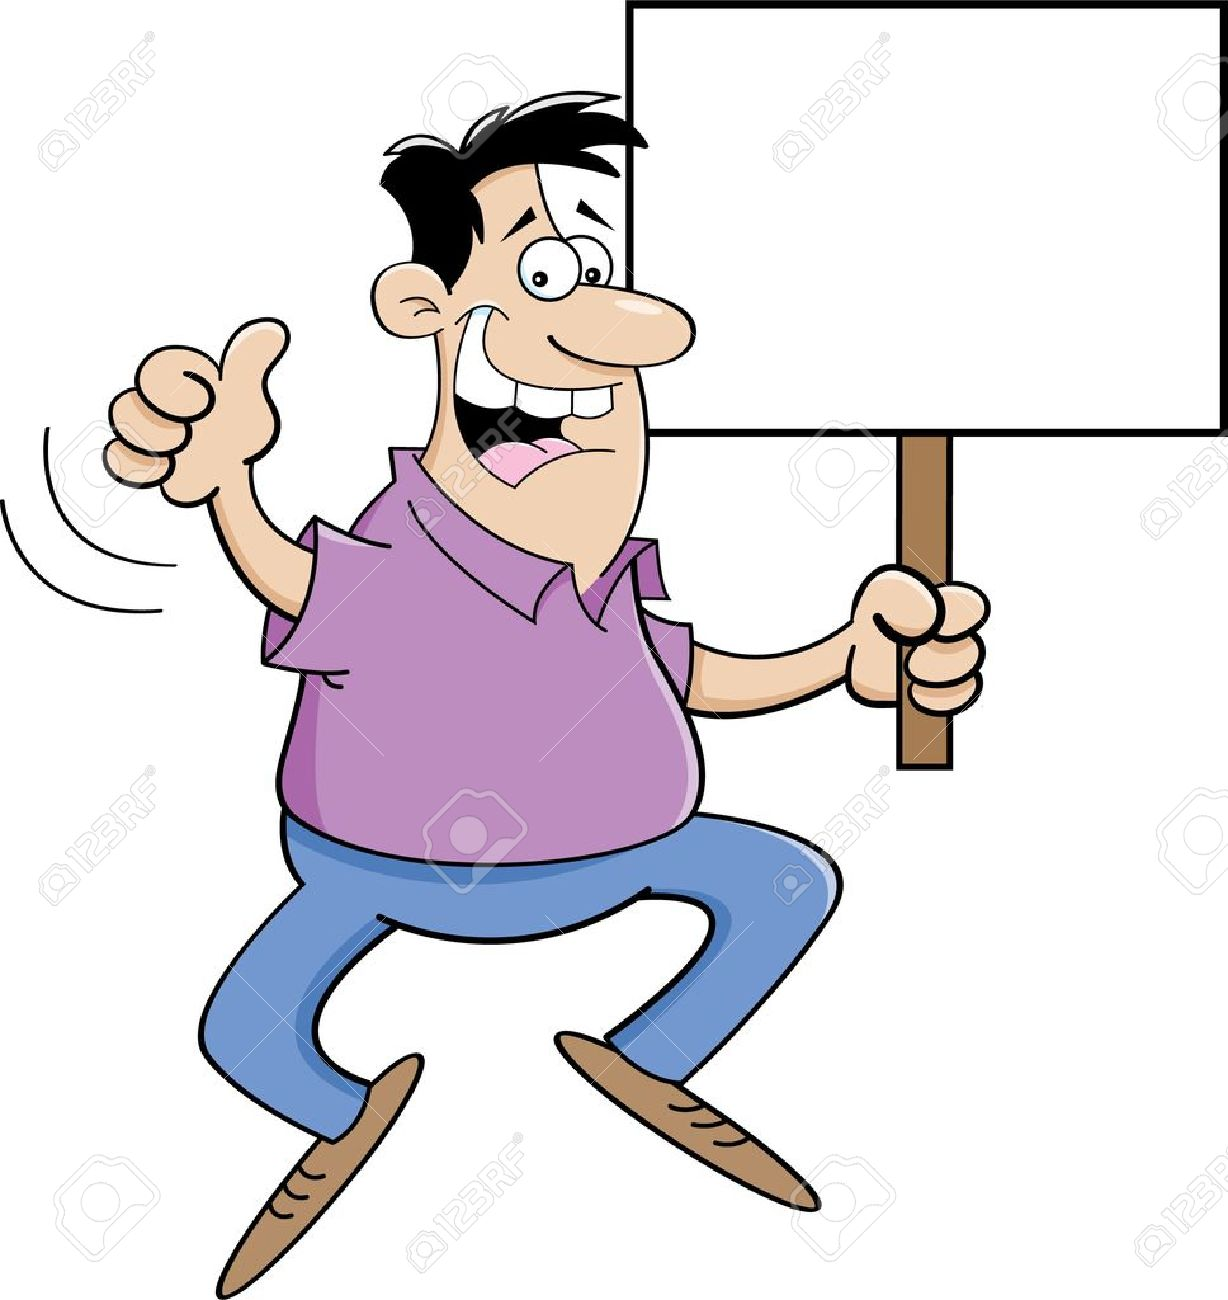 Cartoon Illustration Of A Man Jumping And Holding A Sign Royalty ...